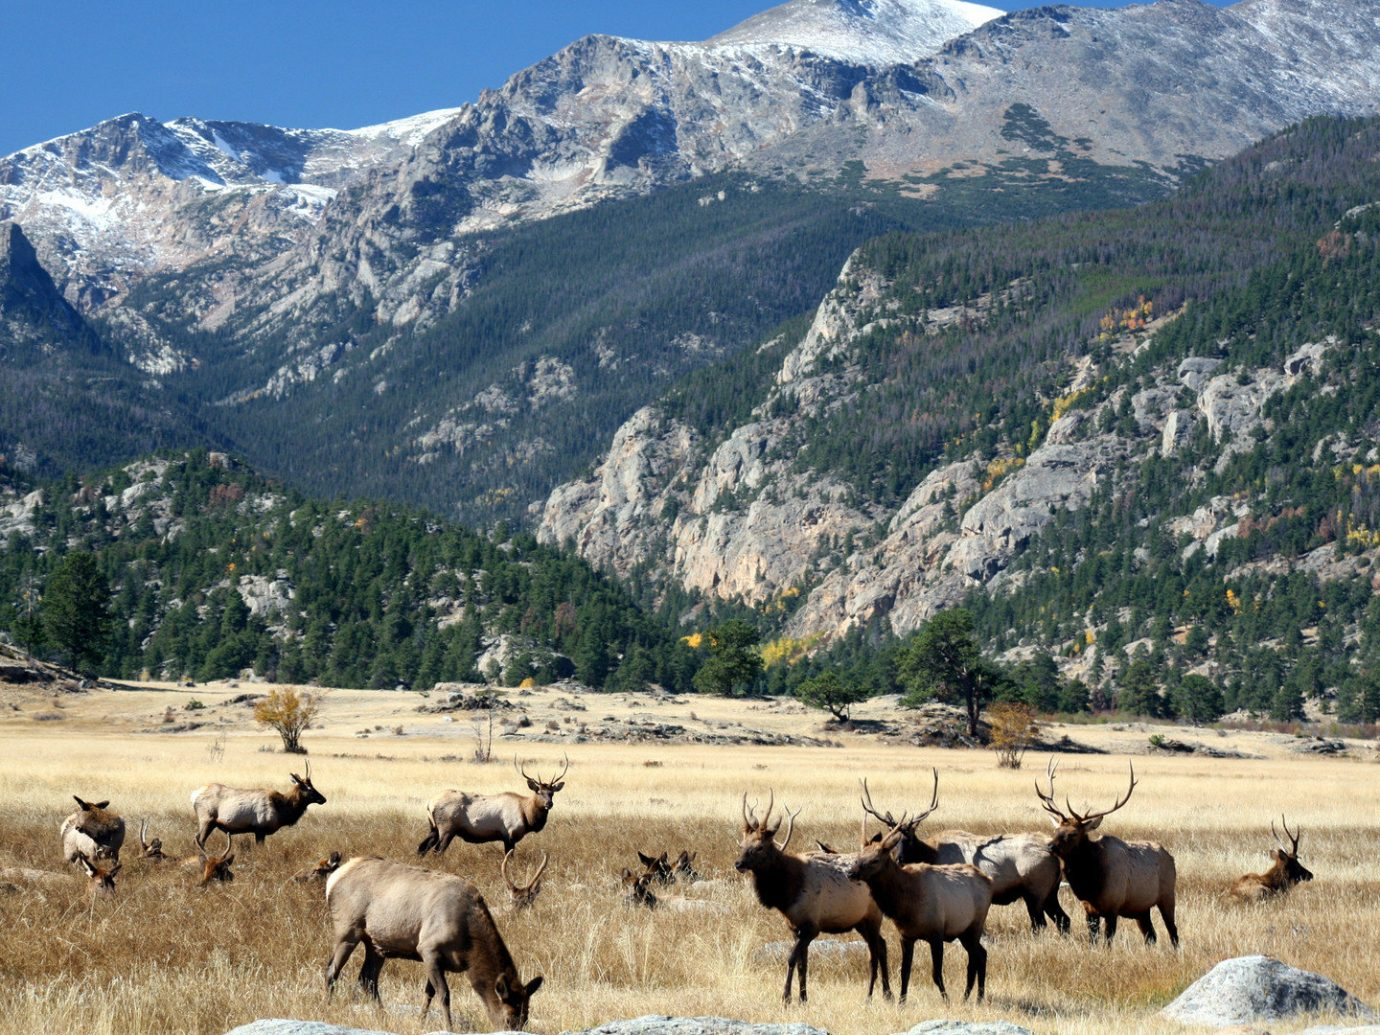 Forest Mountains National Parks Nature Road Trips Scenic views Trip Ideas Wildlife mountain outdoor sky mountainous landforms animal herd mammal wilderness pasture mountain range grazing cattle like mammal landscape plateau group cattle Adventure yak sheep